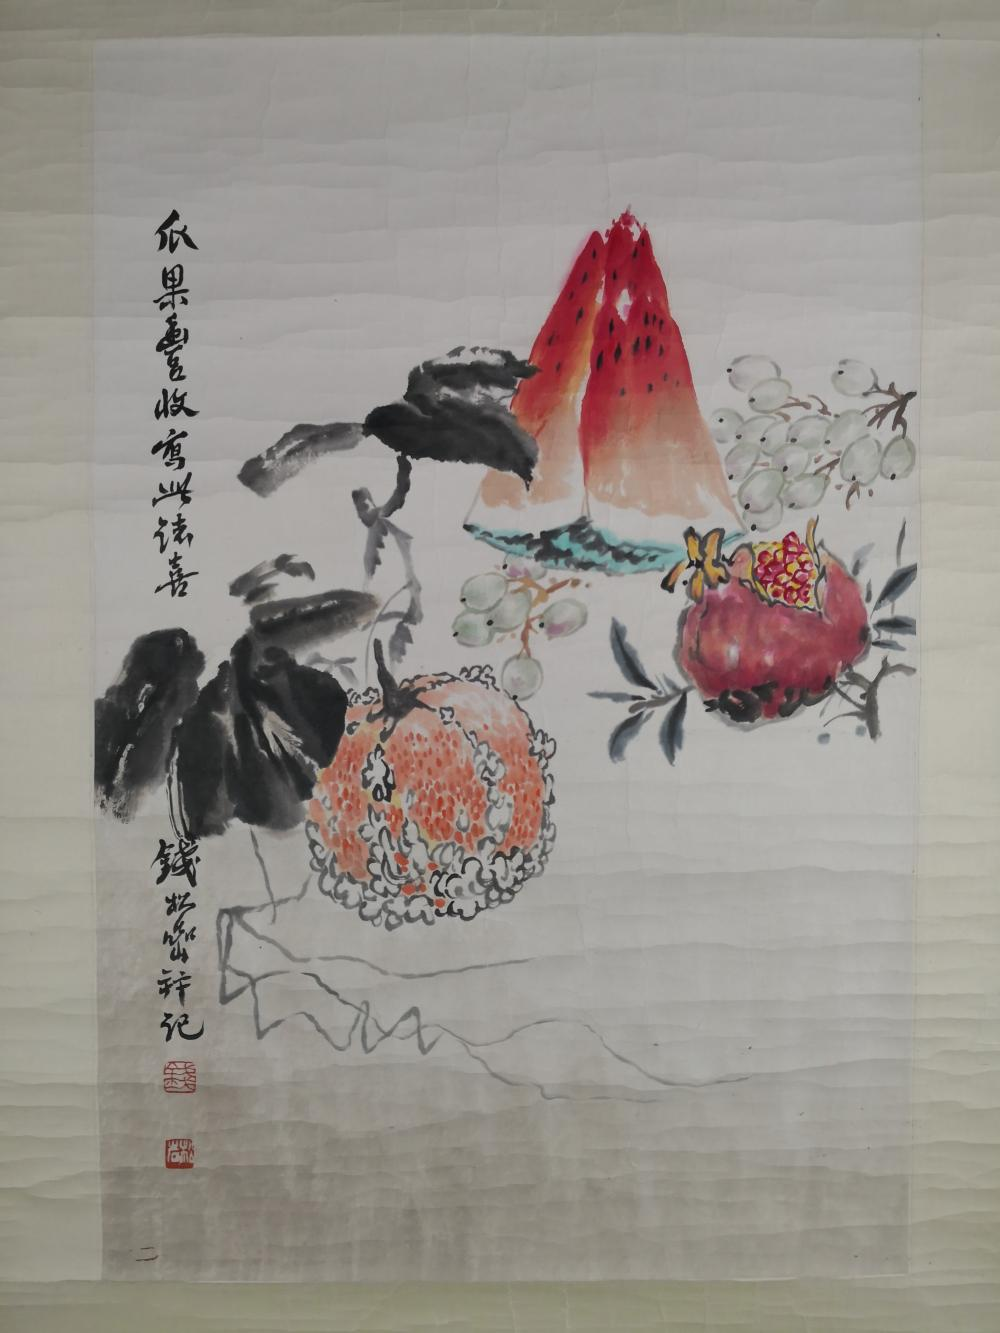 A CHINESE PAINTING BY QIAN SONGYAN